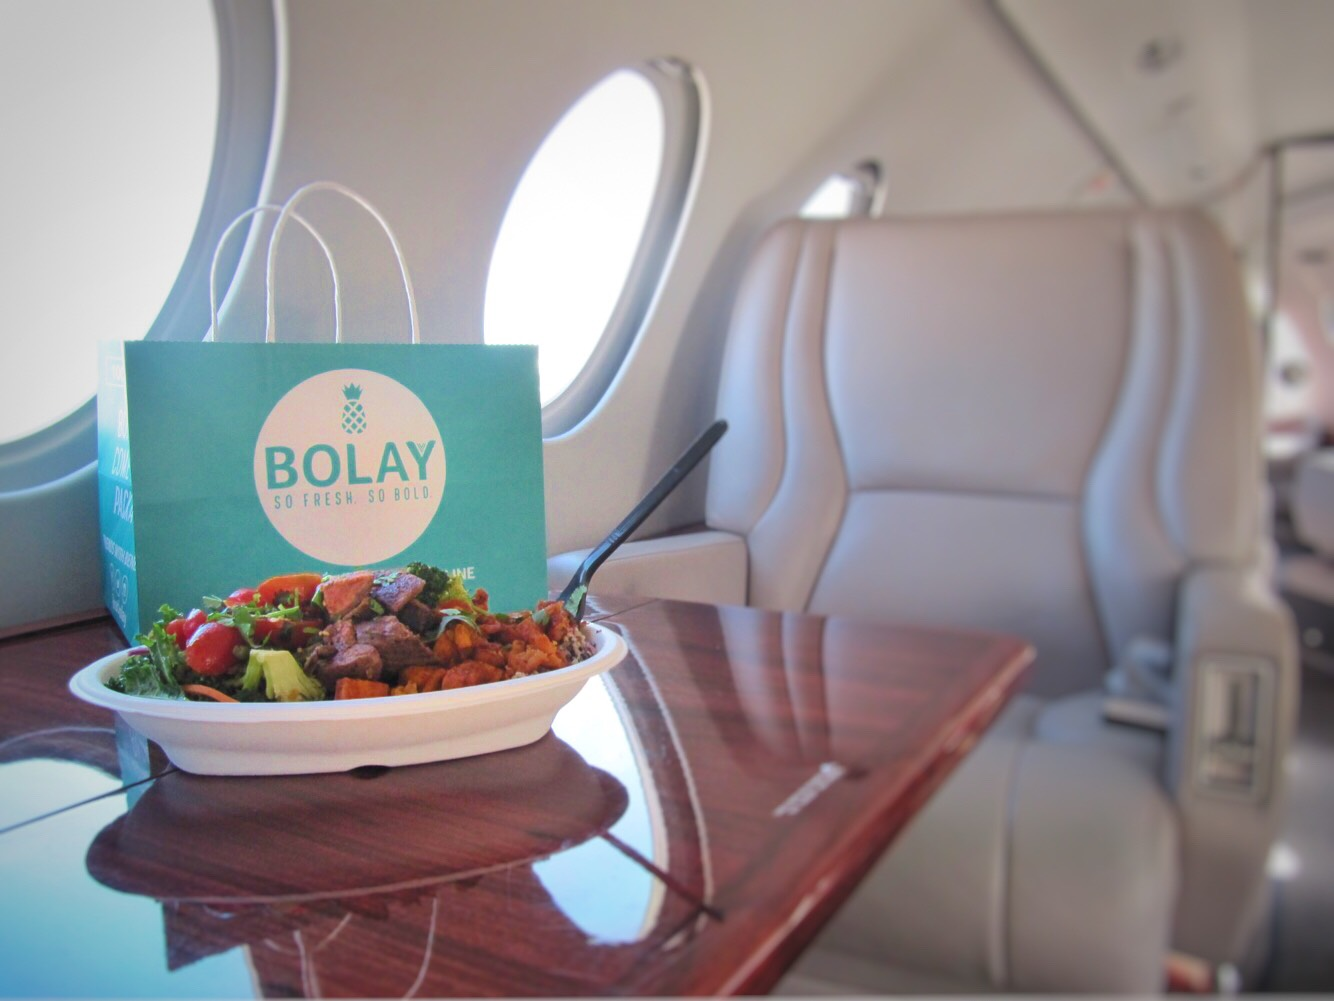 Stay healthy when flying with us! Free Raw Juce and Bolay